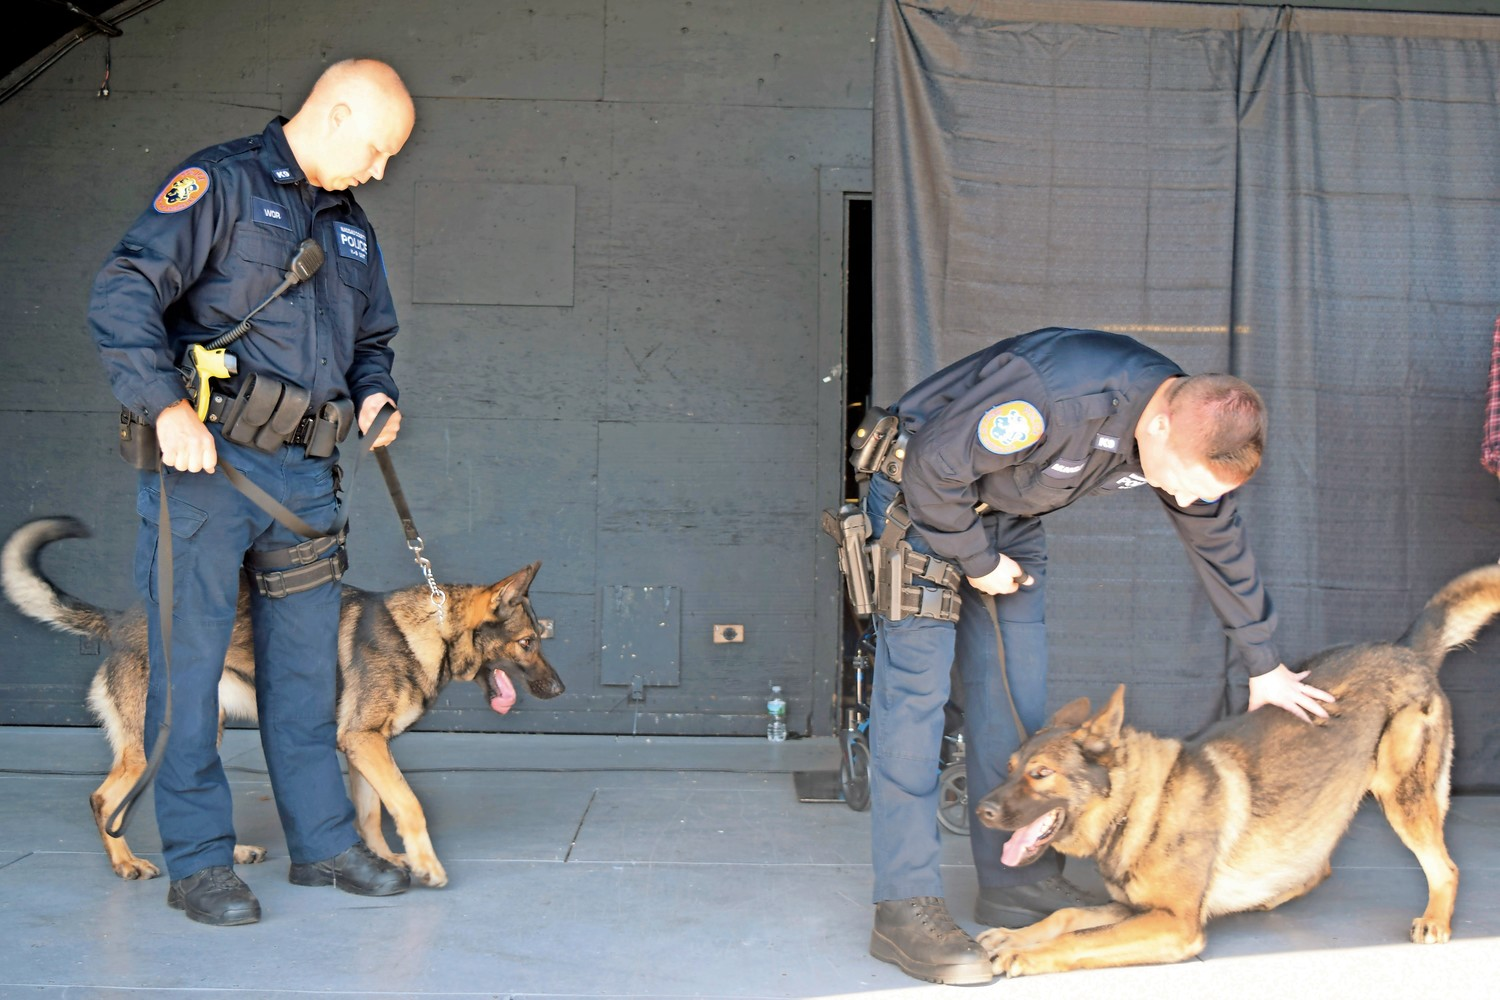 Canine Unit officer Adam Wor, left, with his dog, Blitz, and Officer Kevin Munnelly and his dog, Doyle.